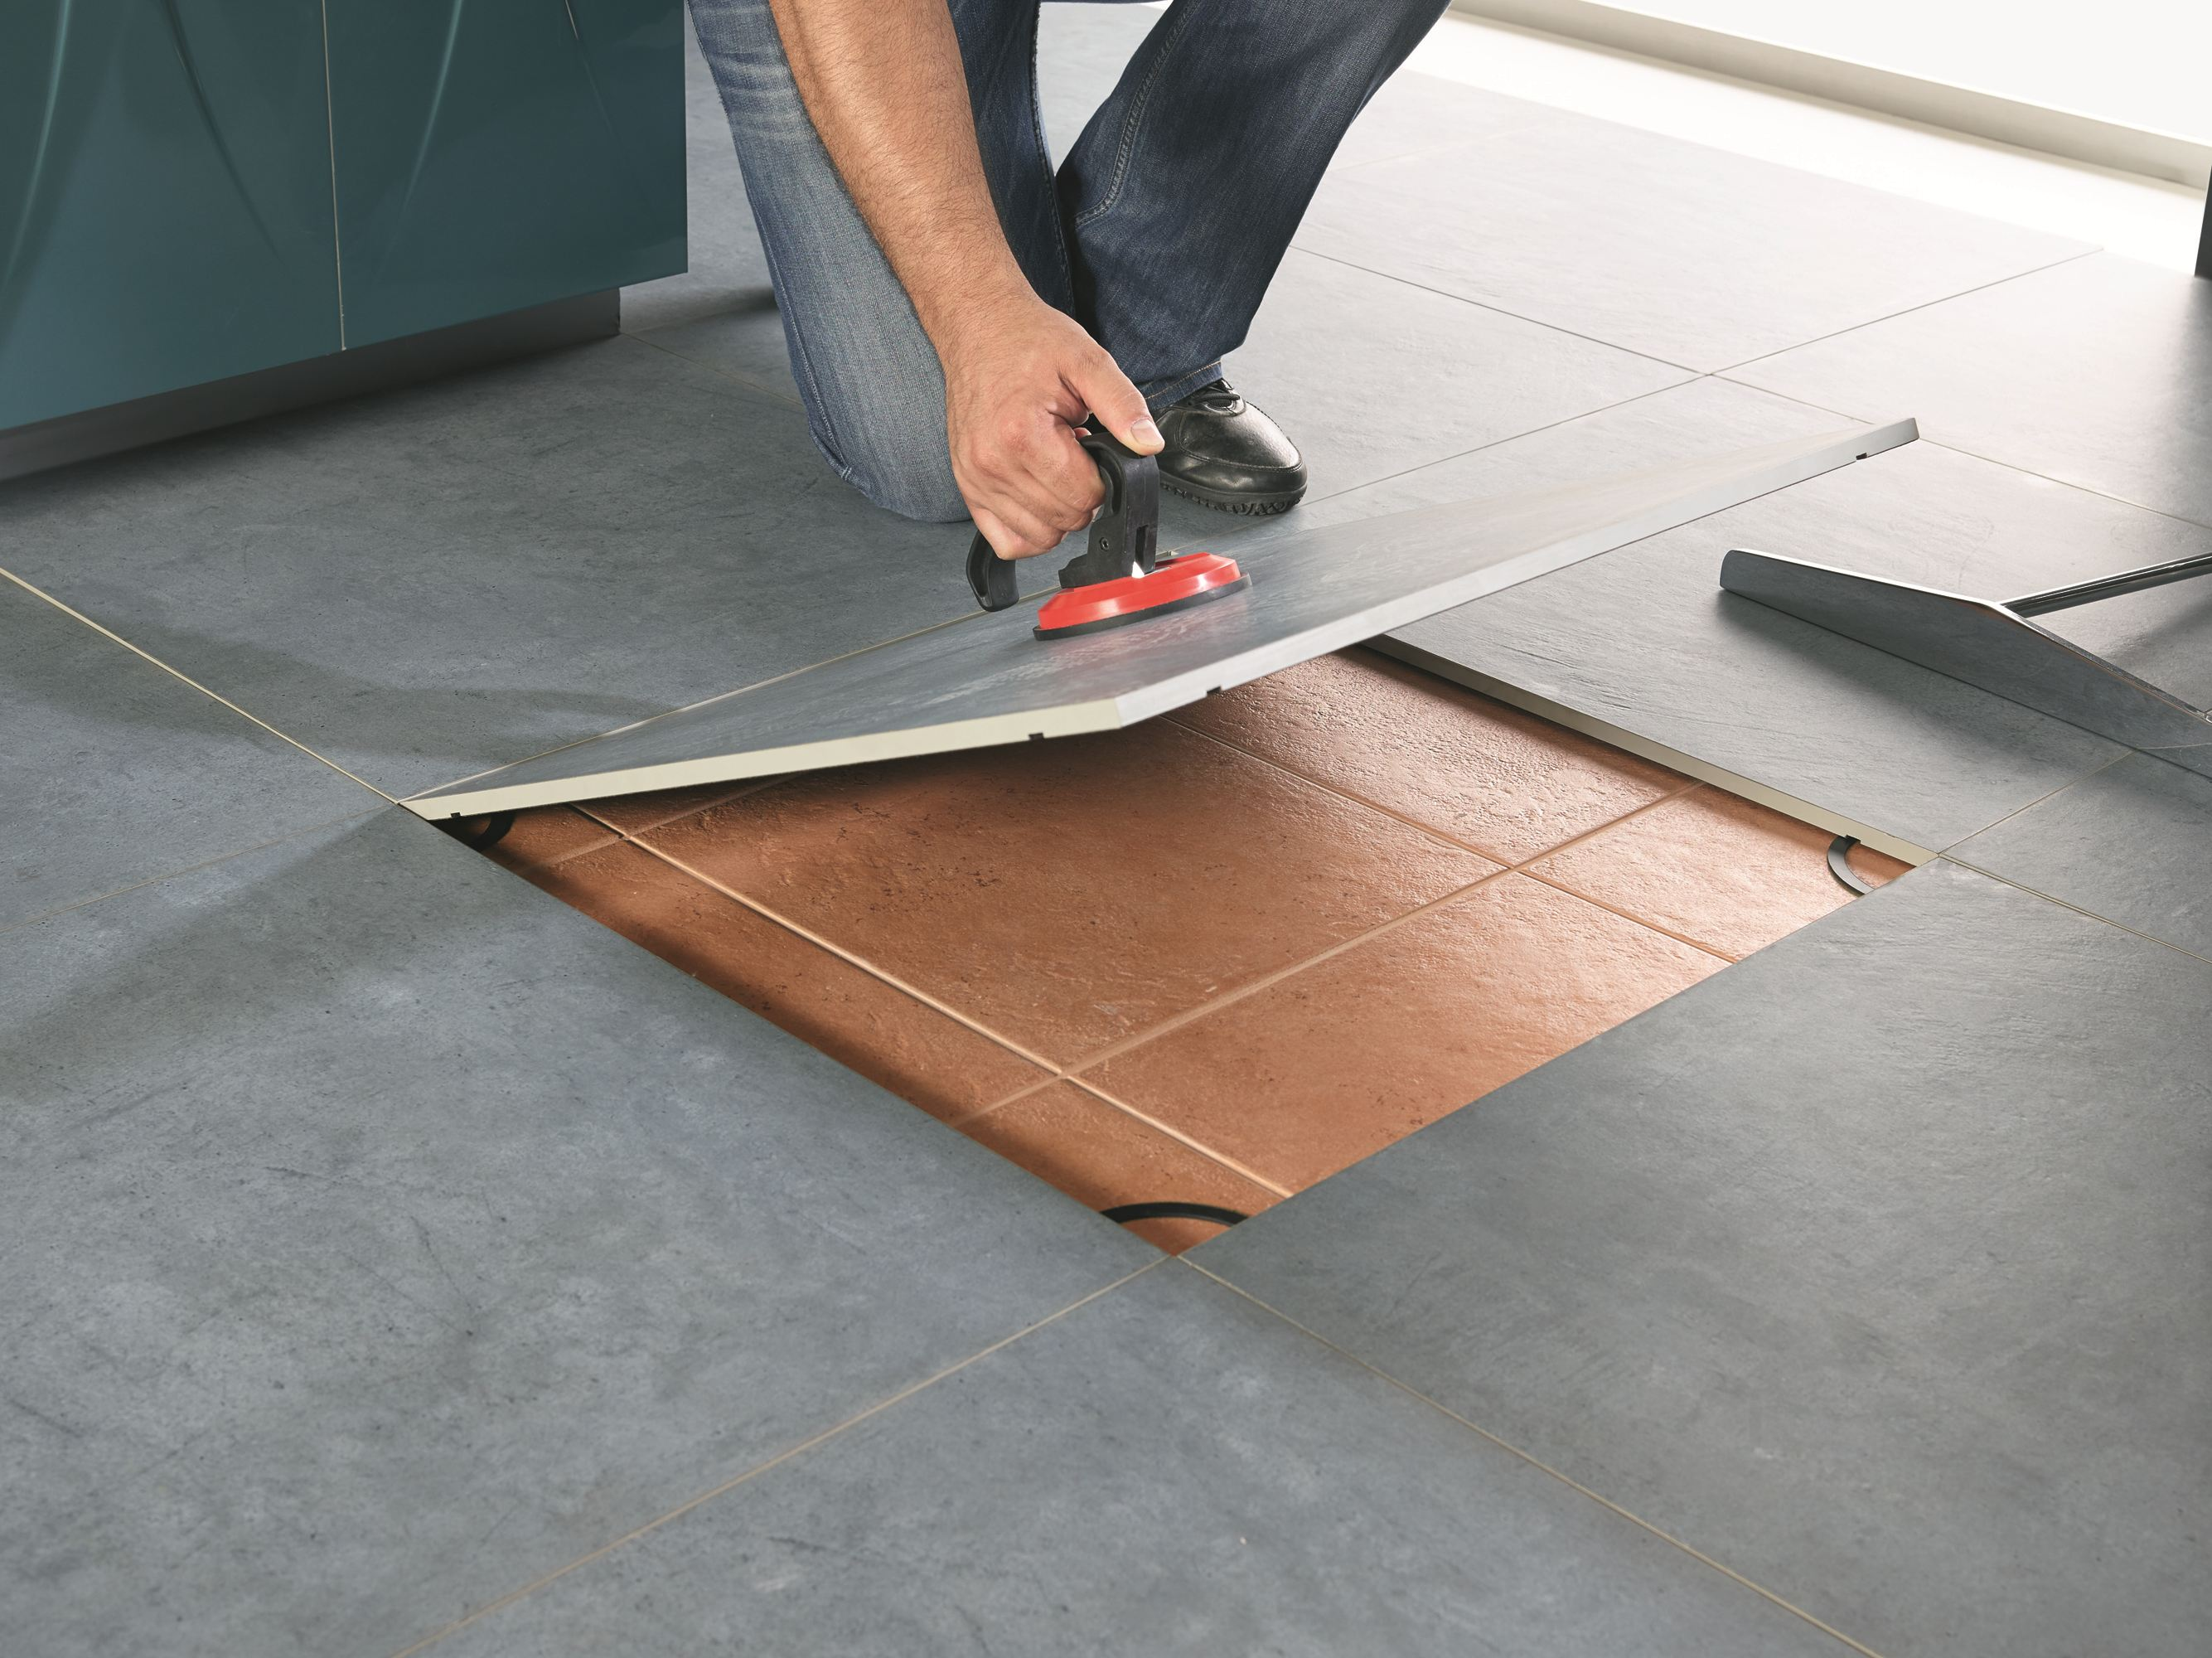 Carrelage adhesif sol for Sol sur carrelage